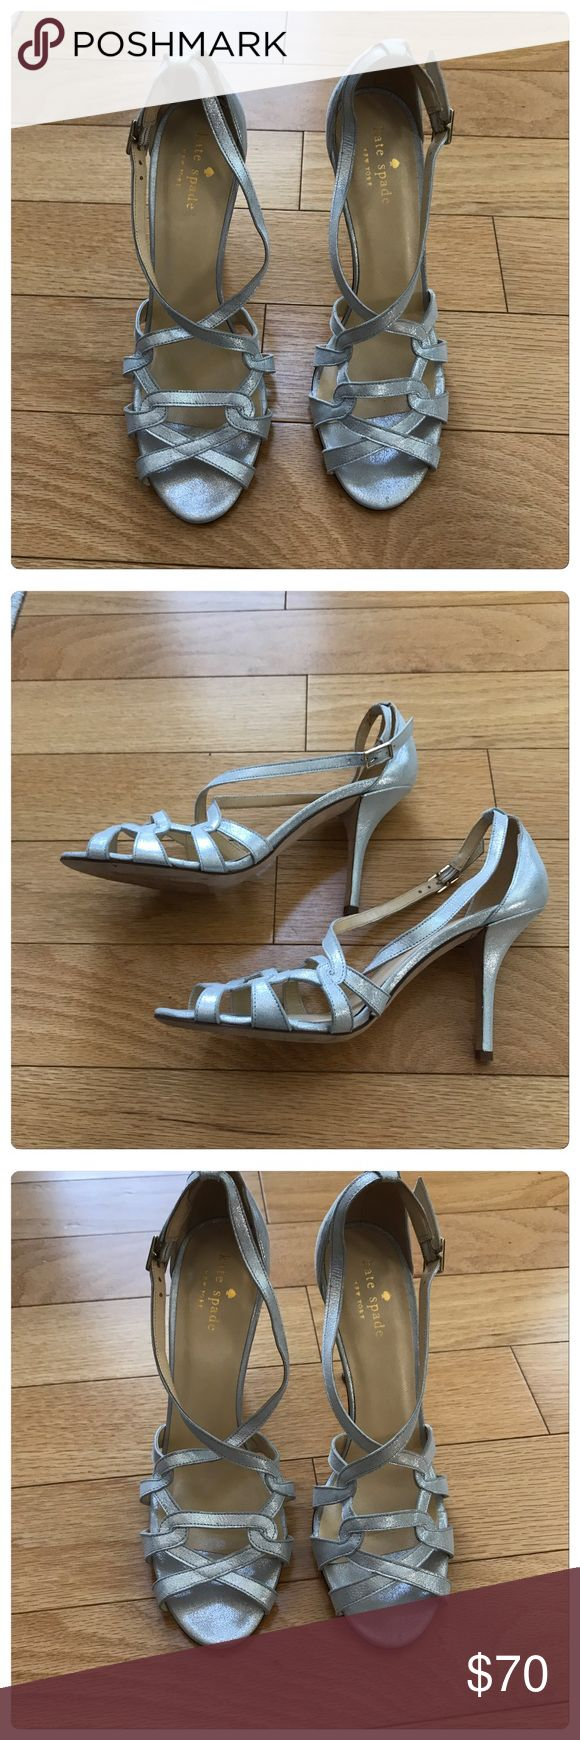 Kate Spade, Beautiful Silver Strappy Sandals! Kate Spade, Beautiful Silver Strappy Sandals/Heels. Multi strap design with adjustable ankle strap. Absolutely stunning! Only worn once in perfect condition. Size 7. 🚫No Trades kate spade Shoes Heels